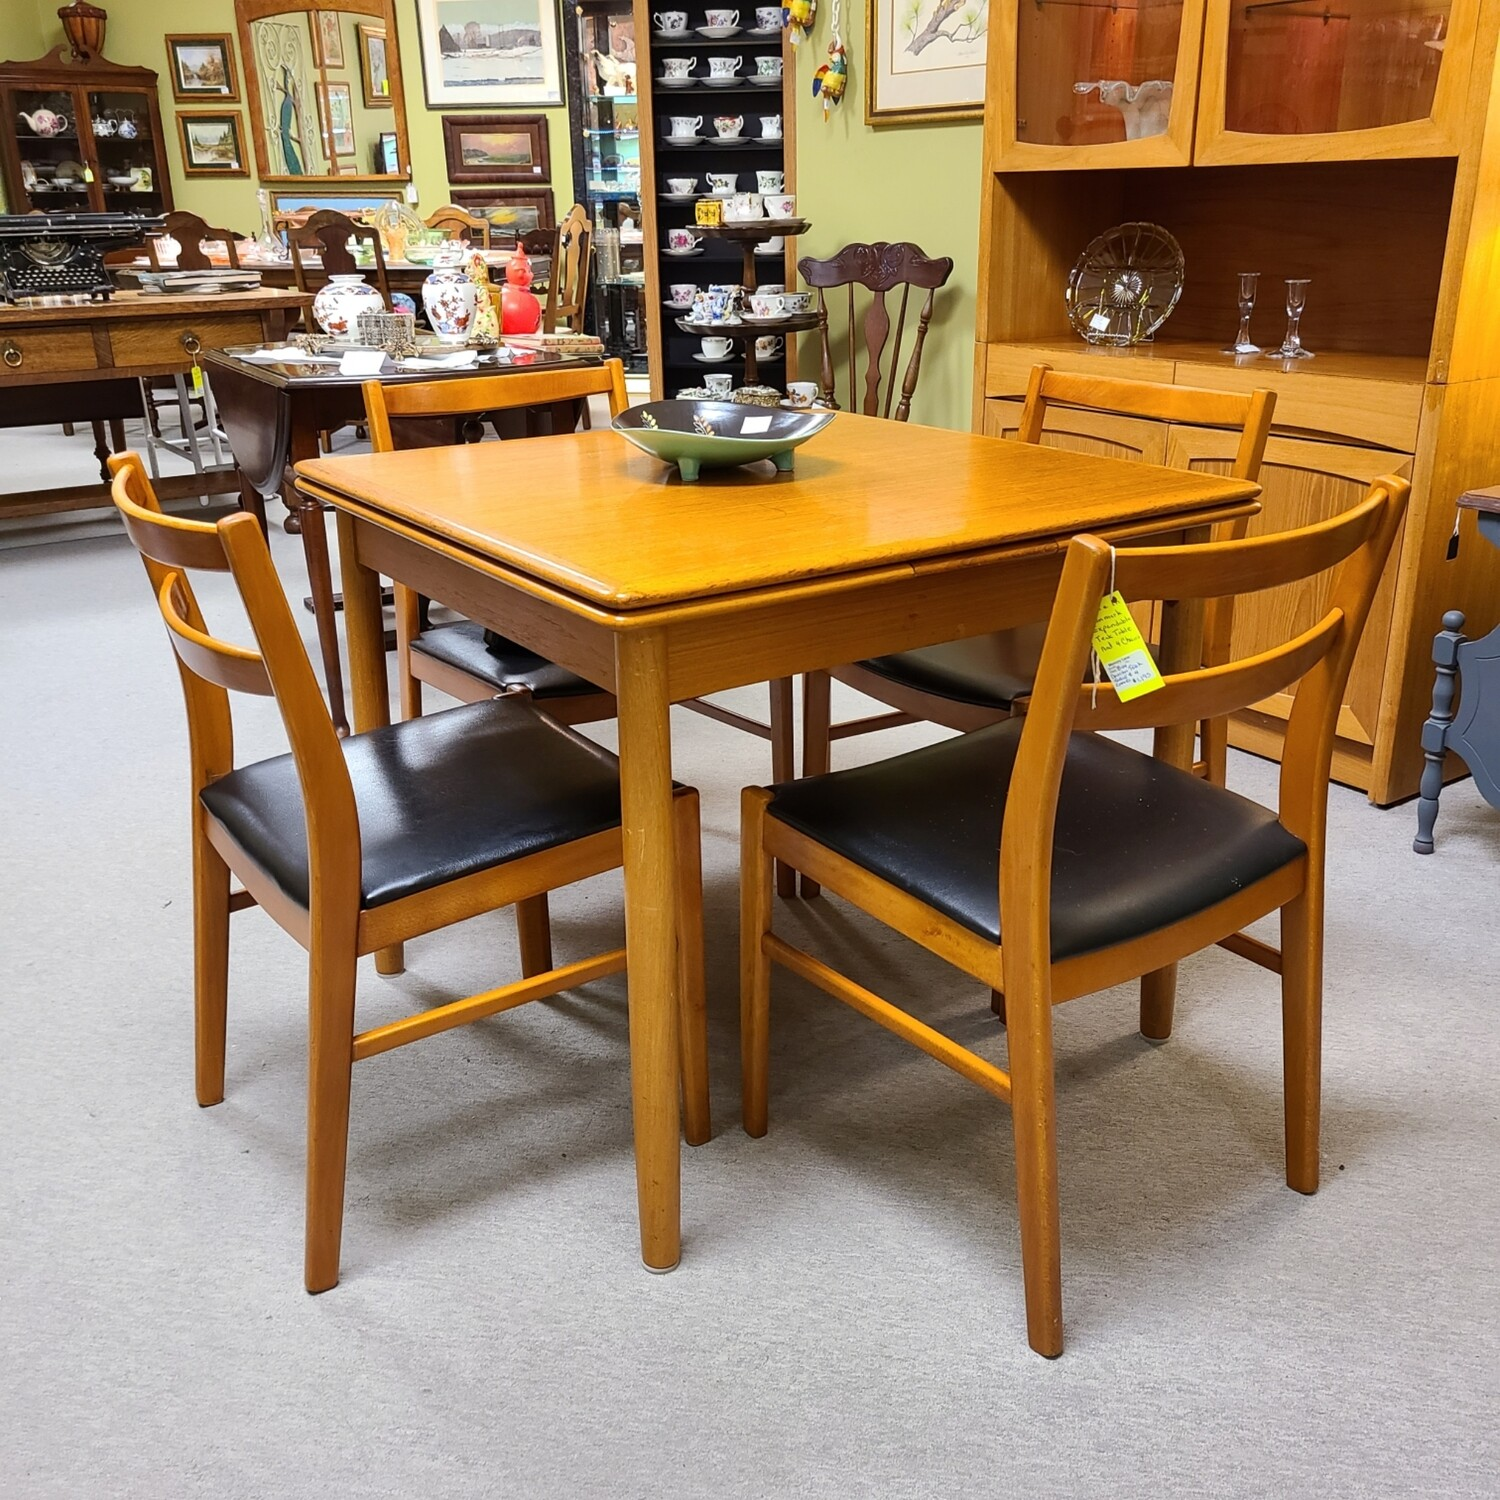 Teak Table with Four Chairs